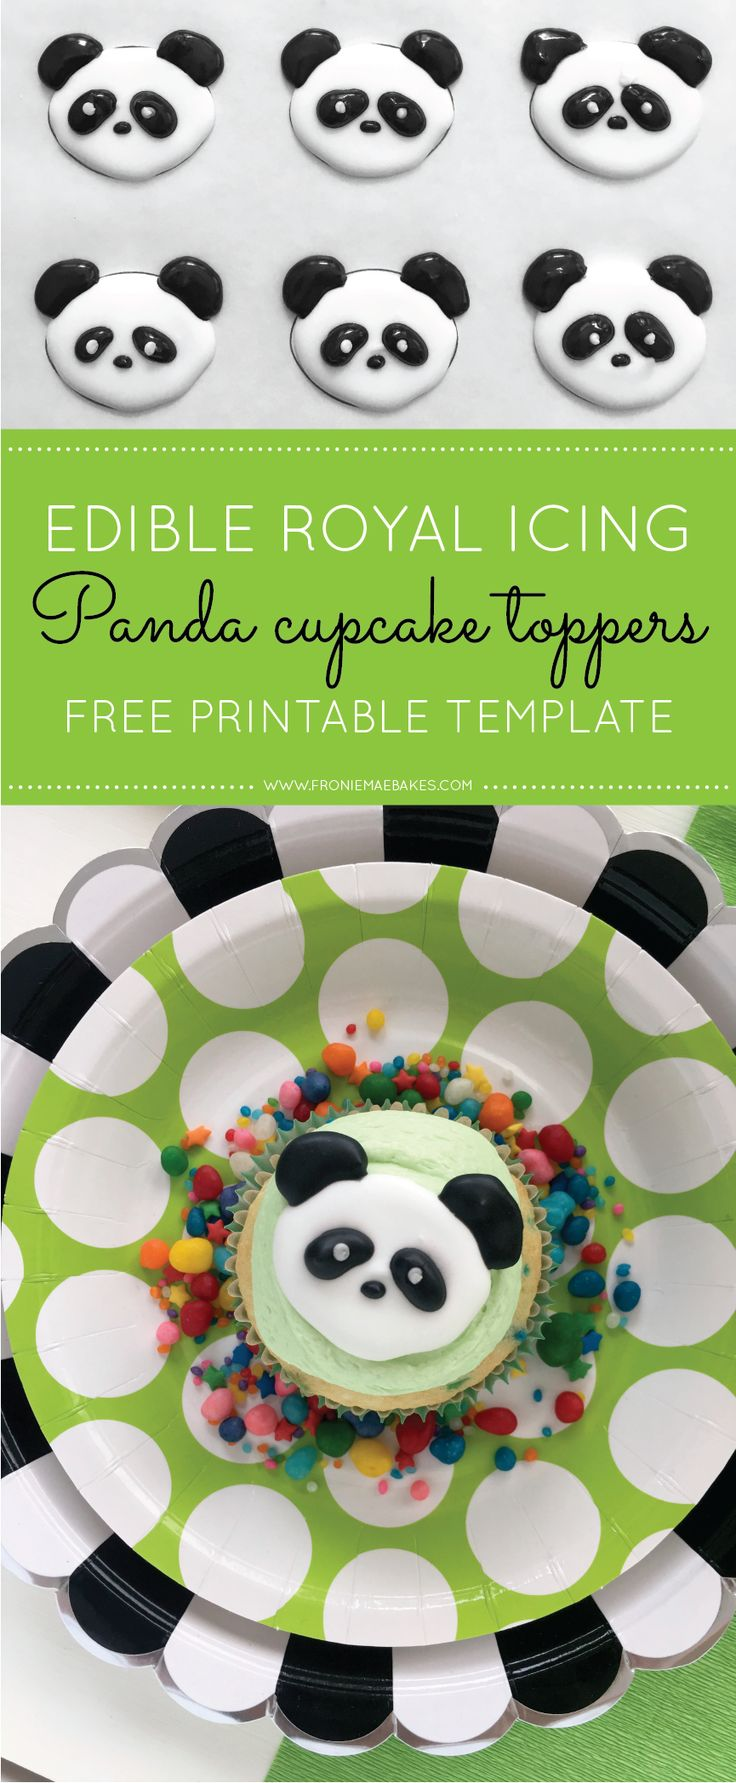 panda bear cake template - best 25 panda cupcakes ideas on pinterest kung fu panda